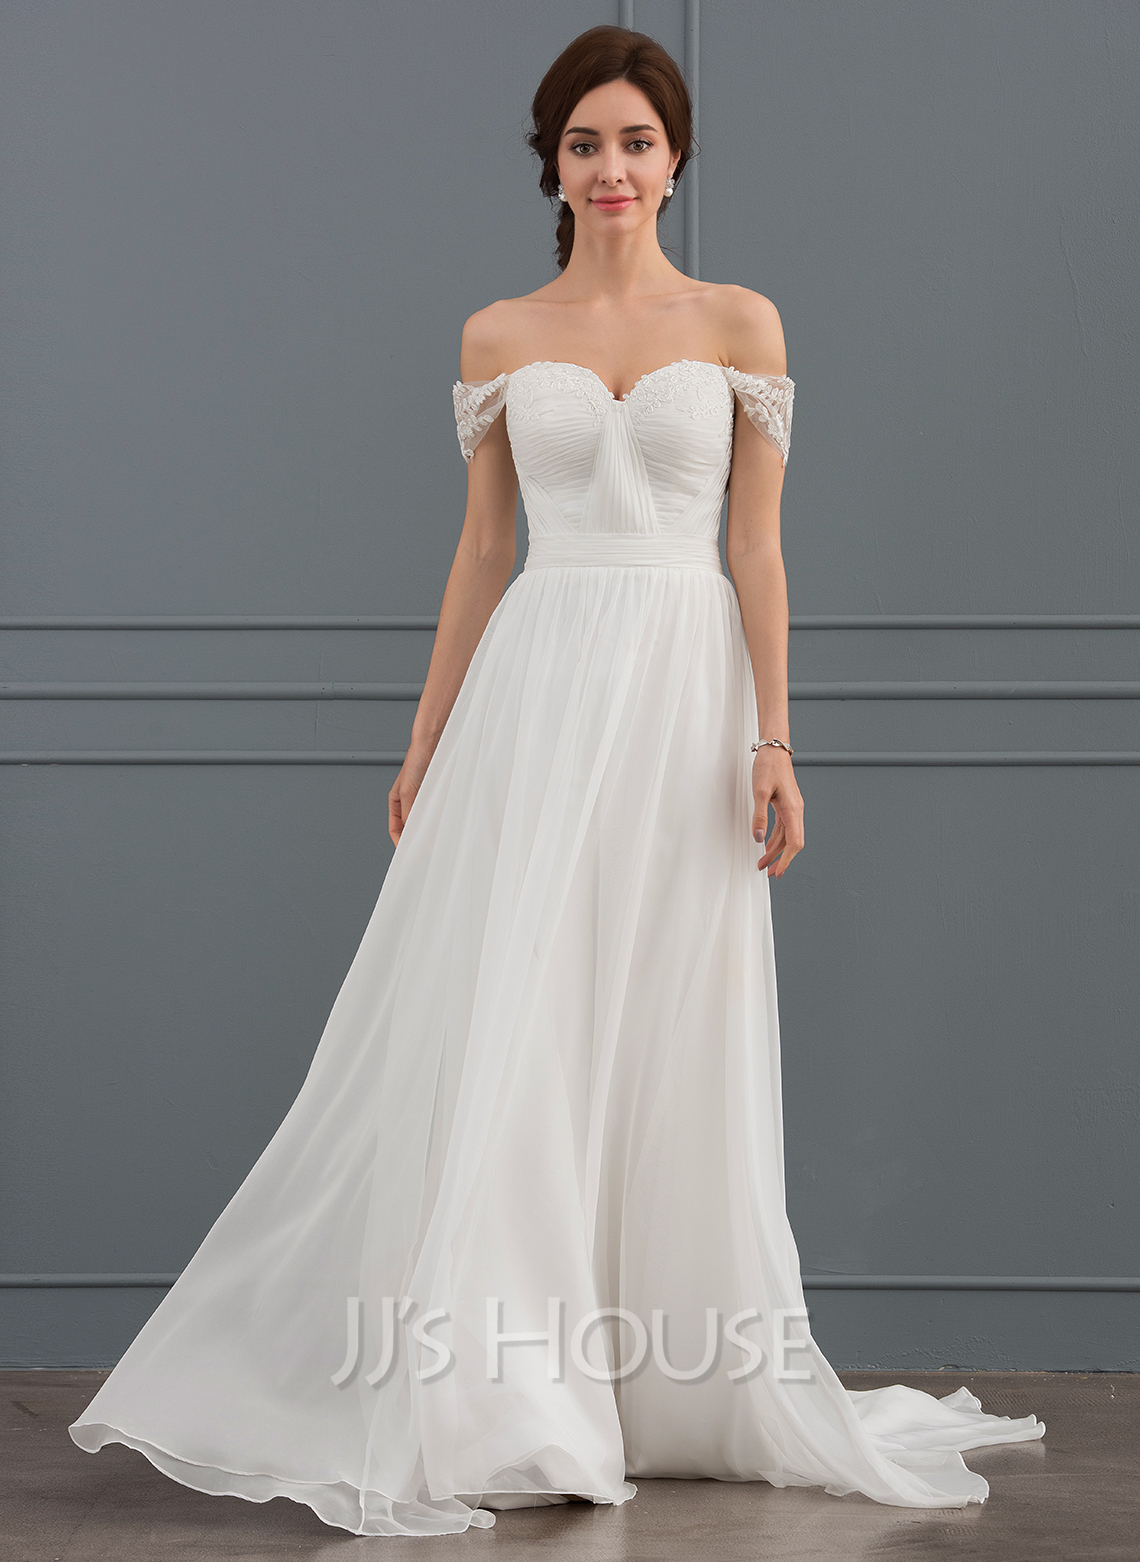 A Lineprincess Off The Shoulder Sweep Train Chiffon Lace Wedding Dress With Ruffle 002124281